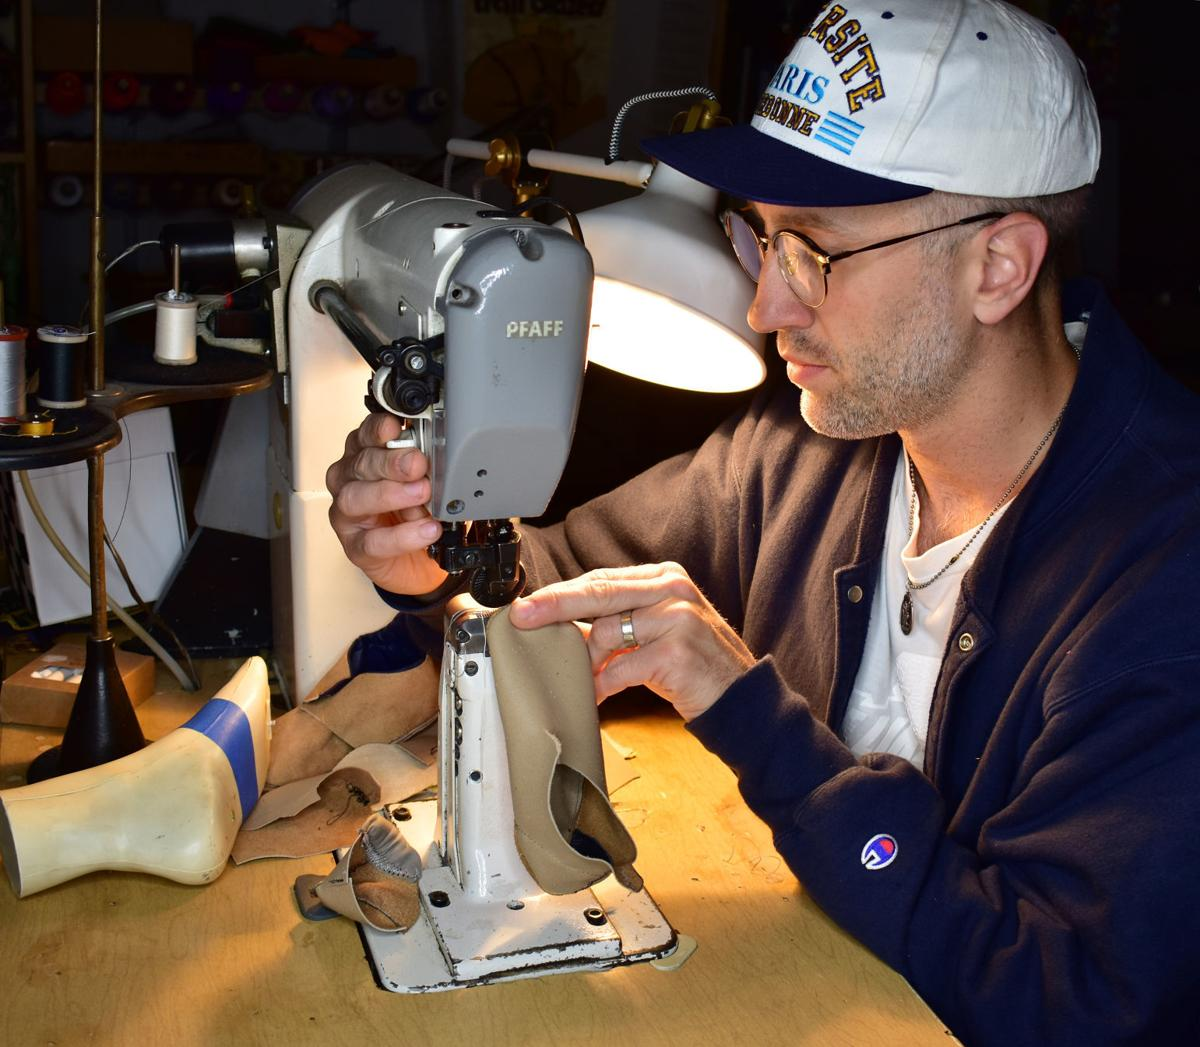 Last Dancing Shoes: A Kelso kid grows up to realize his dream